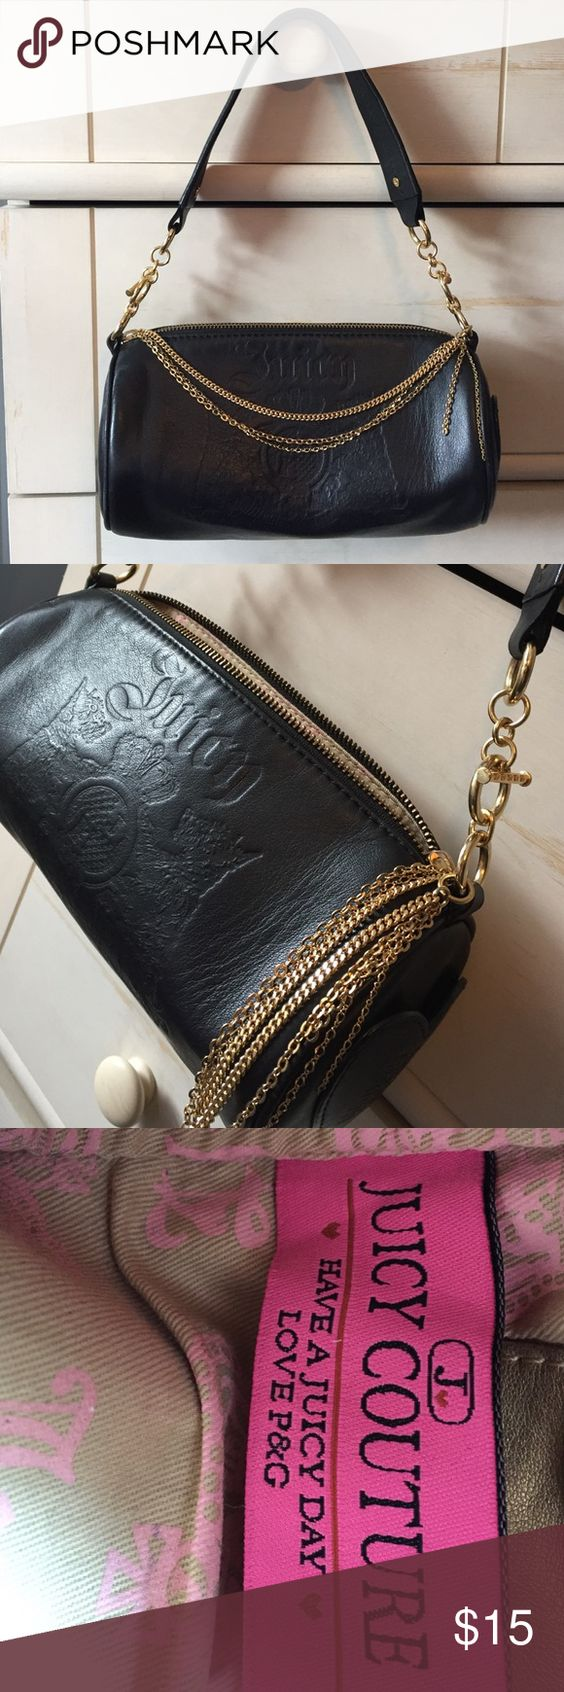 Juicy Couture Small Handbag Small purse for going out or if you just hold a few things...I love this purse but it's just not big enough for me.  Gentle used but great condition.  Leather purse with gold accents, super cute! Juicy Couture Bags Shoulder Bags